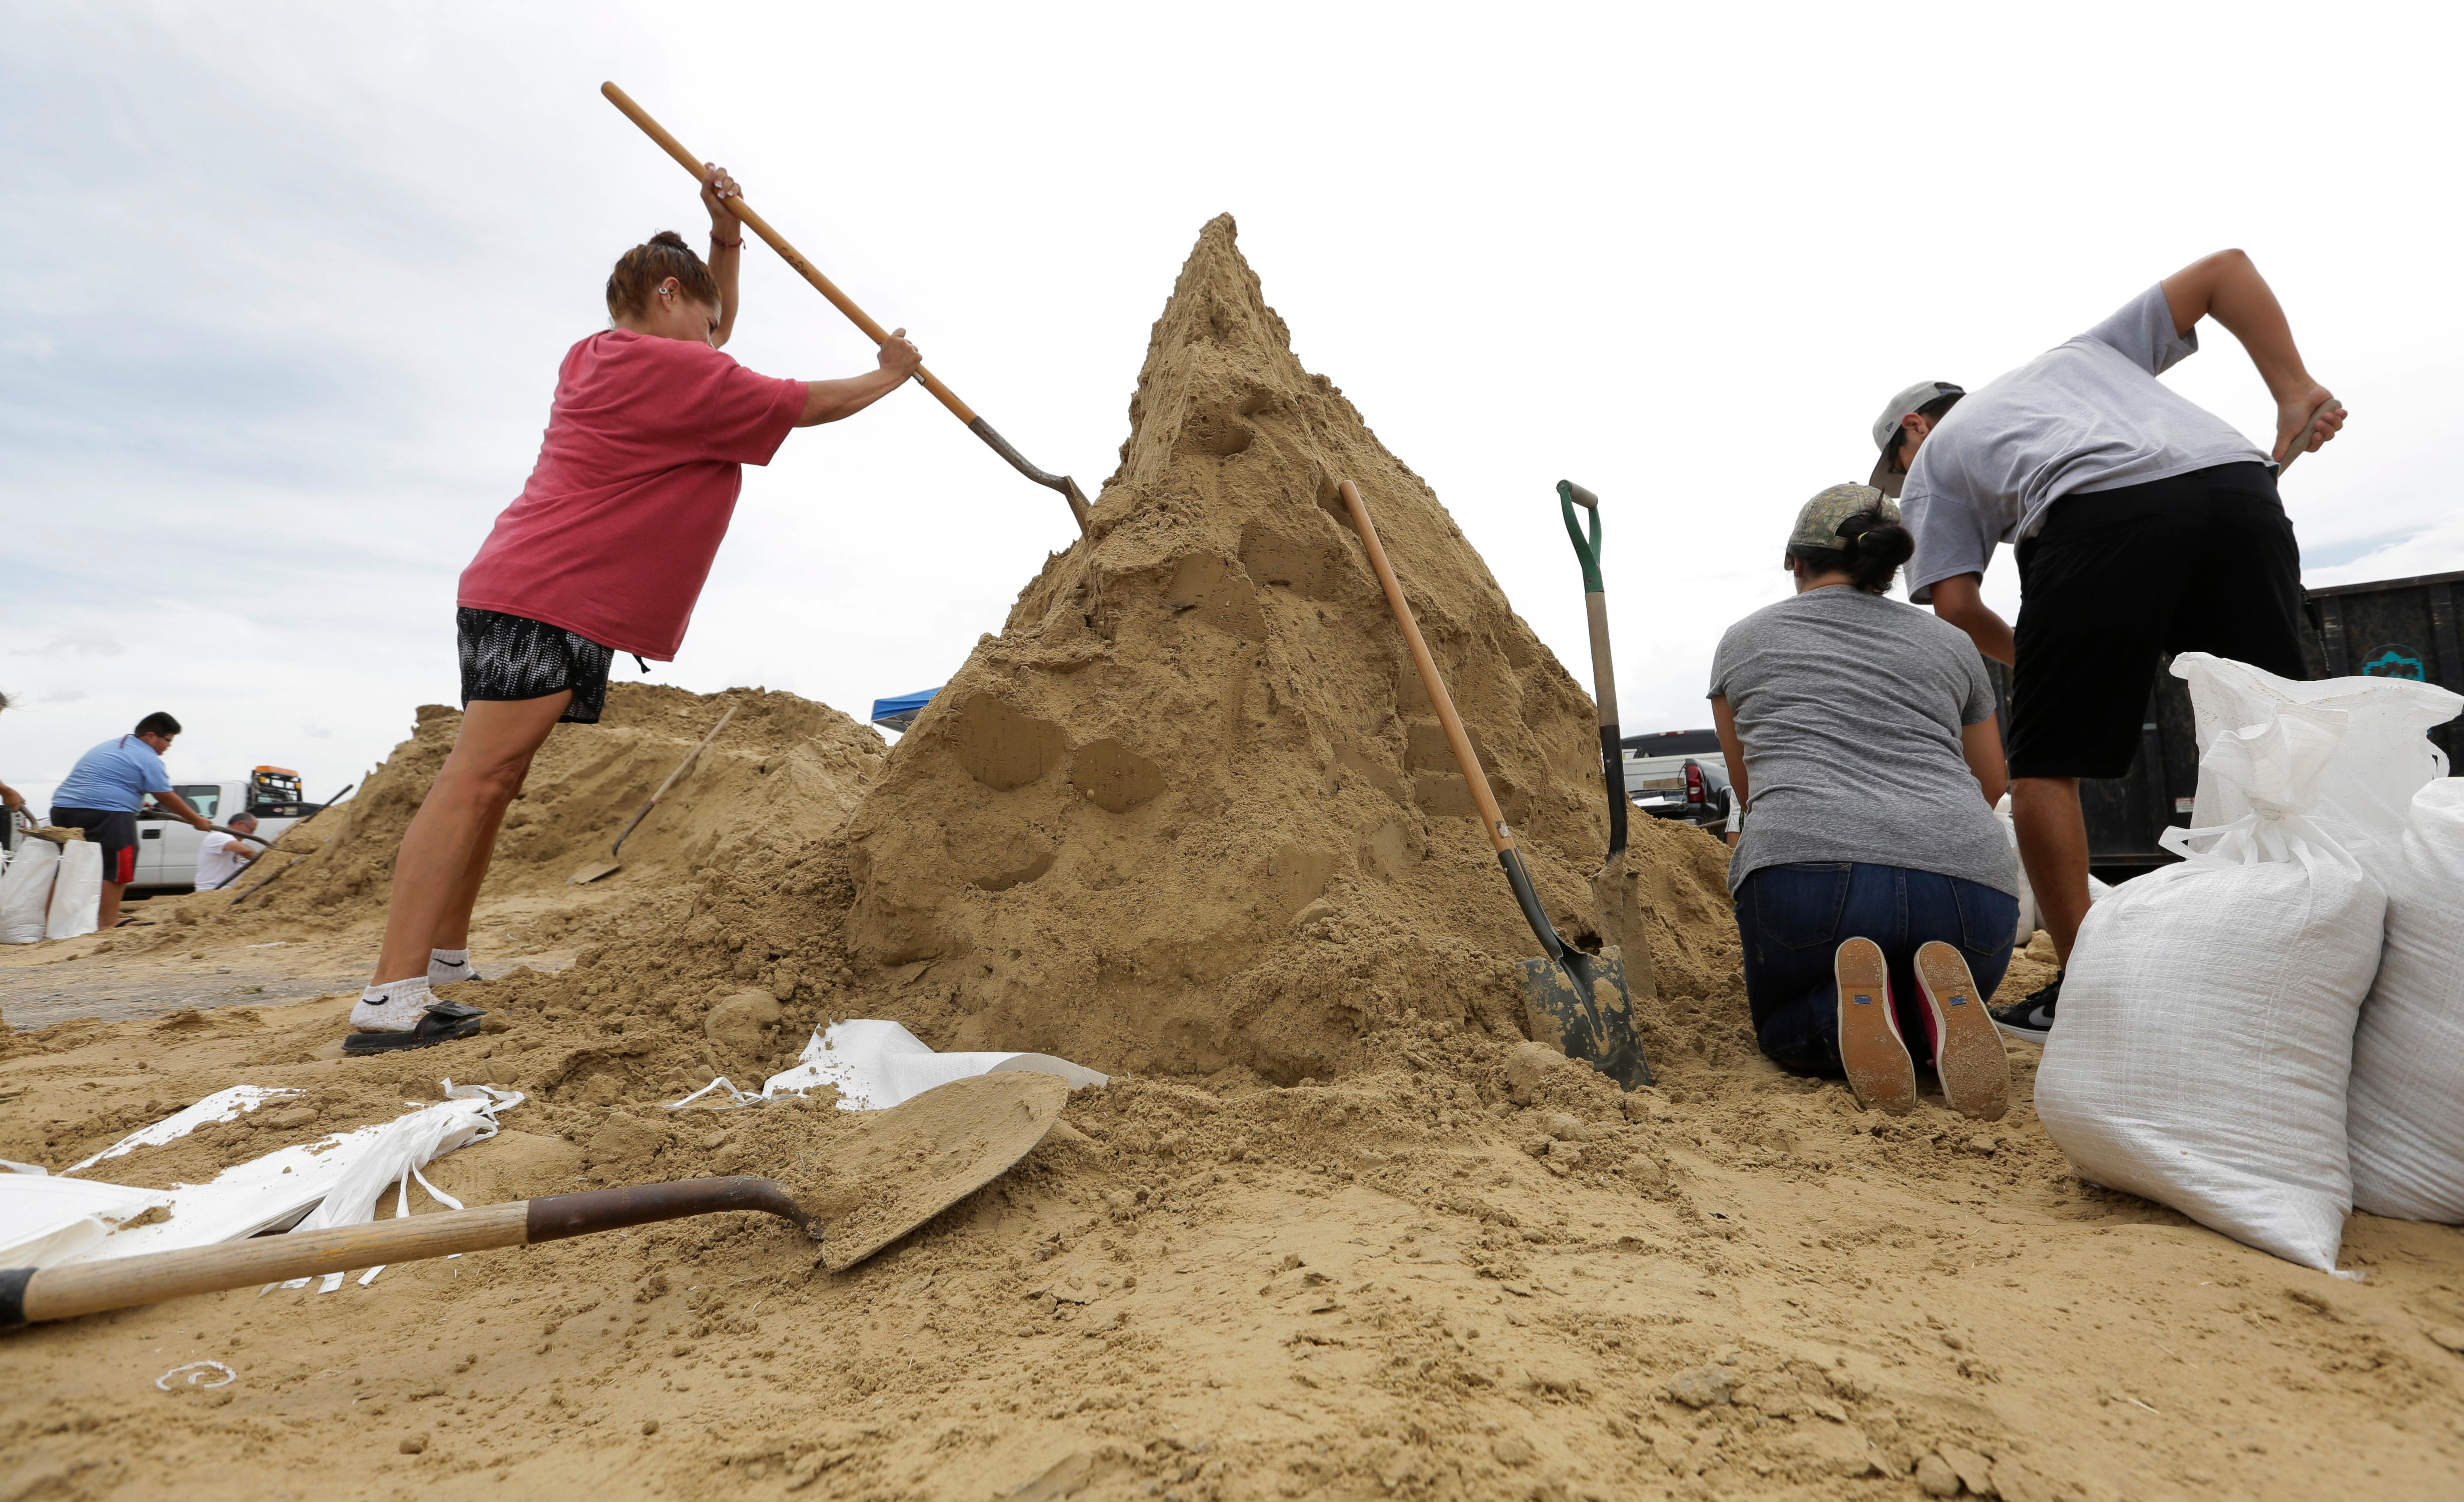 Residents fill sand bags as they prepare for Hurricane Harvey, Thursday, Aug. 24, 2017, in Corpus Christi, Texas.  Two counties have ordered mandatory evacuations as Hurricane Harvey gathers strength as it drifts toward the Texas Gulf Coast.   (AP Photo/Eric Gay)